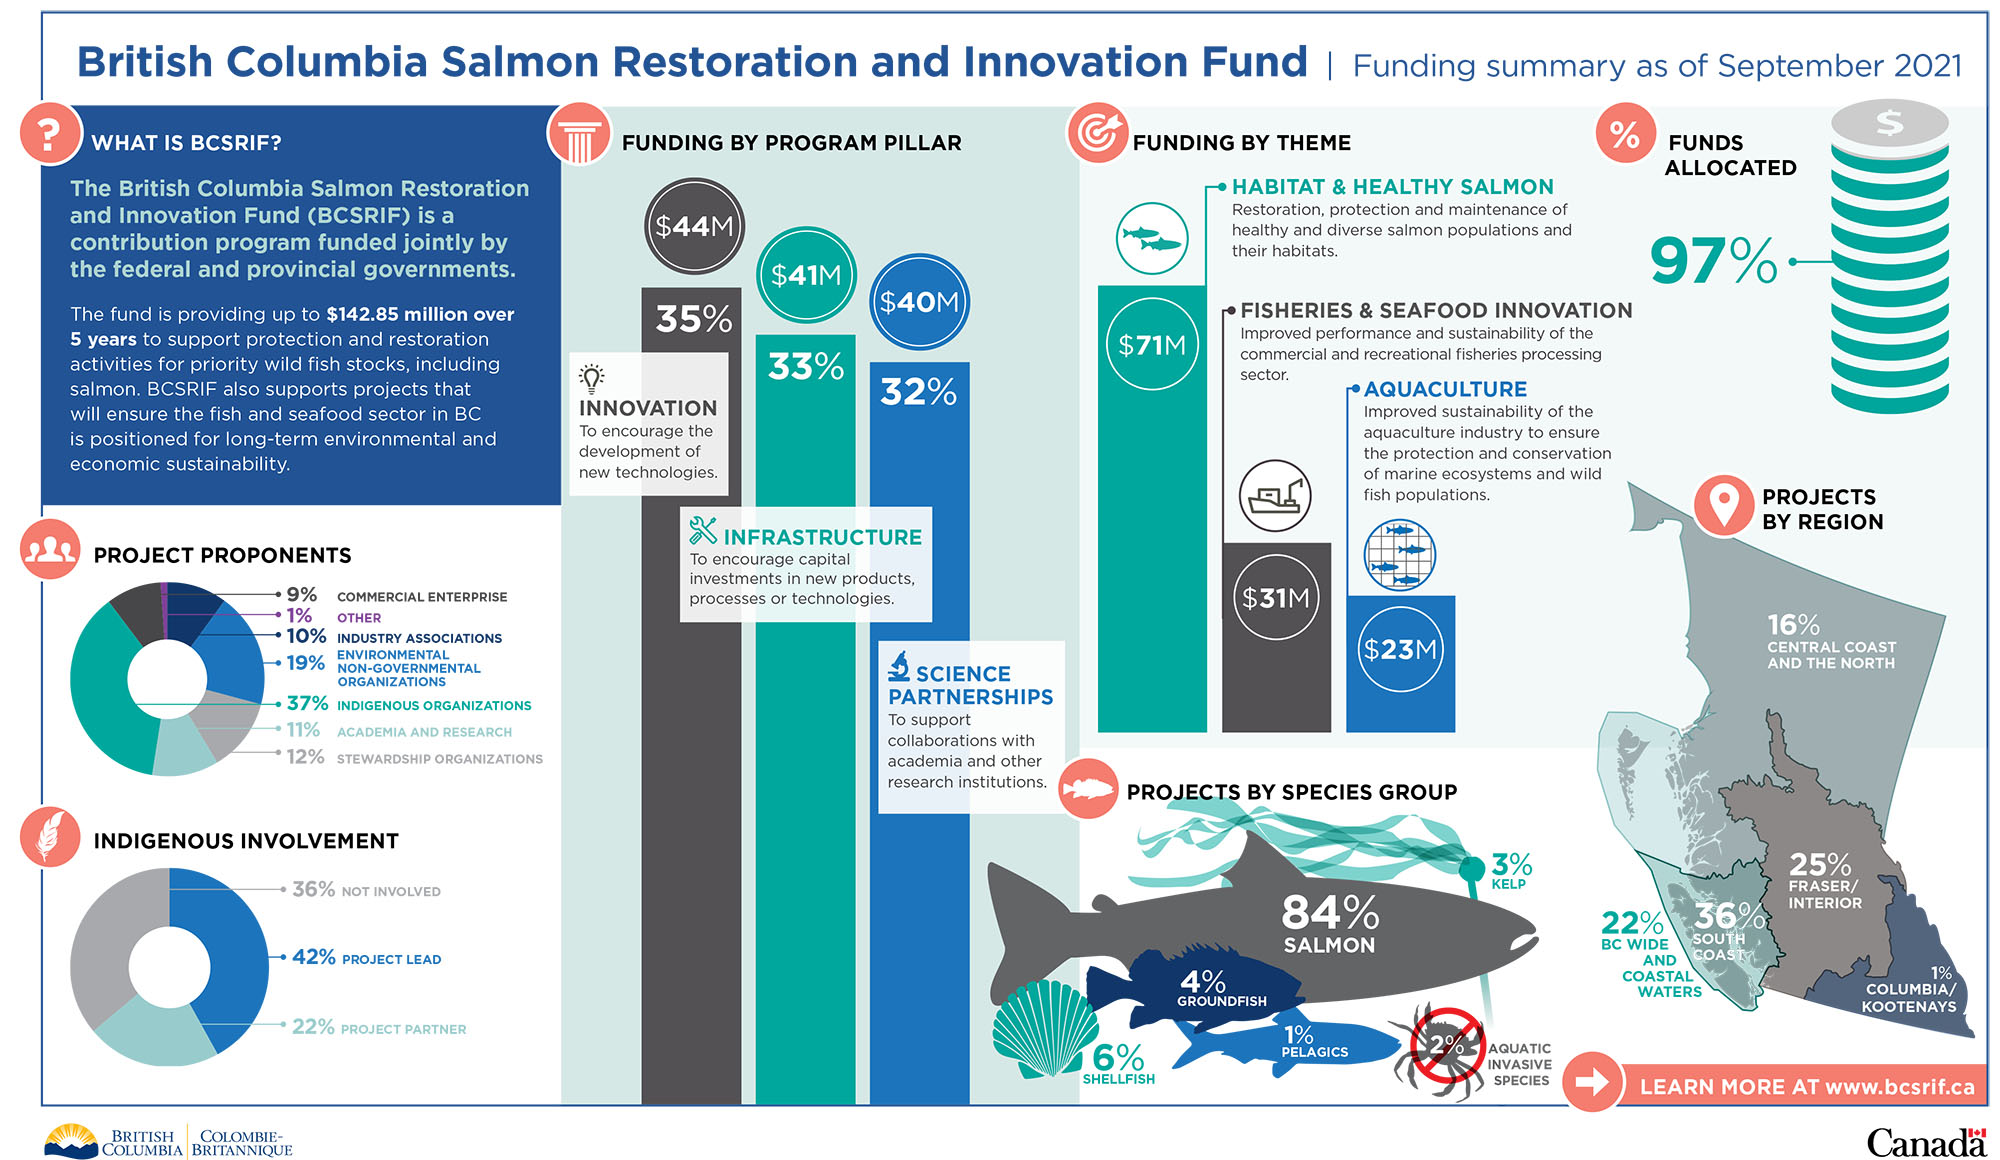 Summary of British Columbia Salmon Restoration and Innovation Fund funding as of July 2020